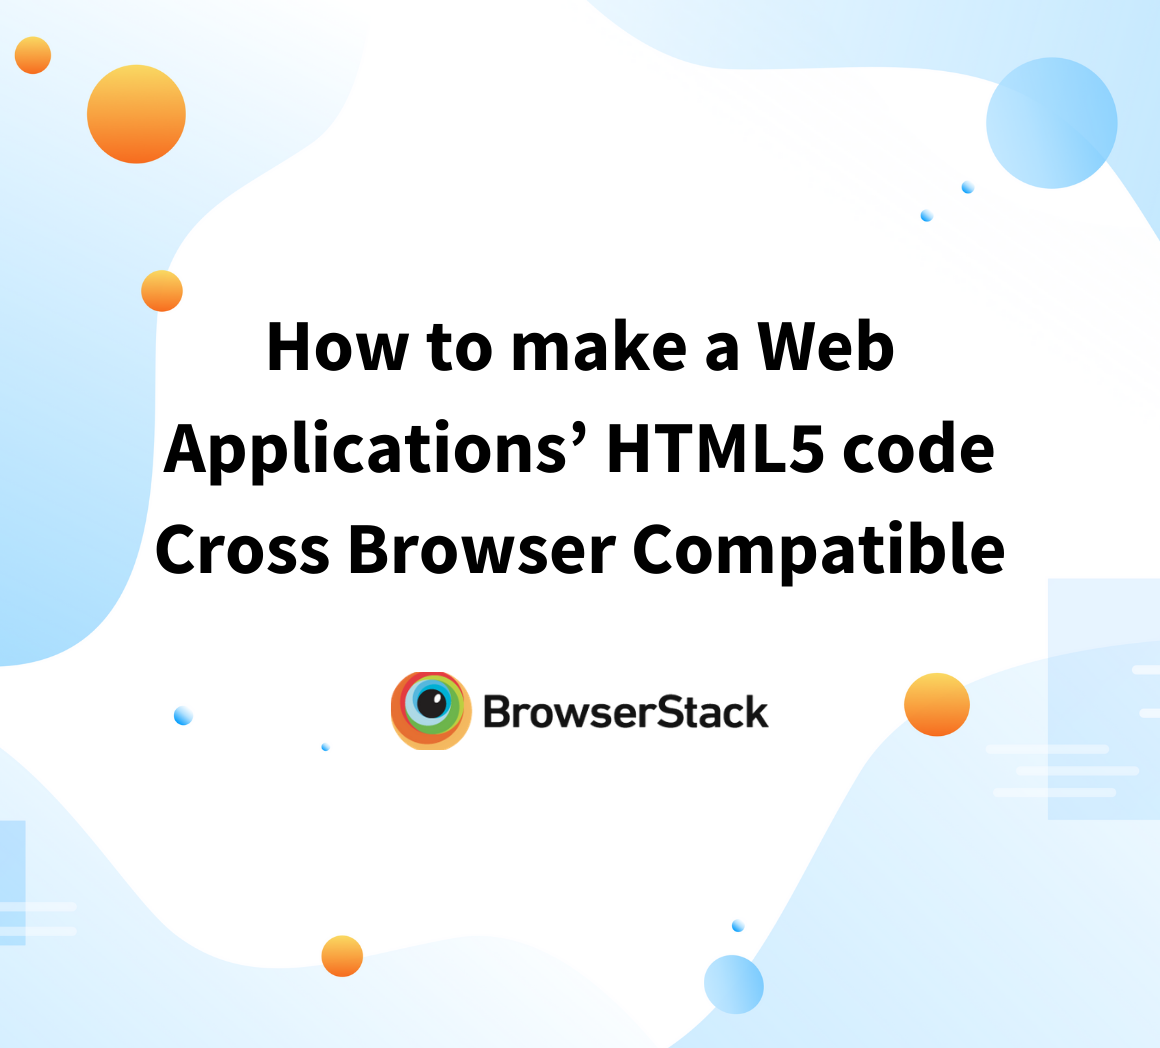 Make an application's HTML5 cross browser compatible